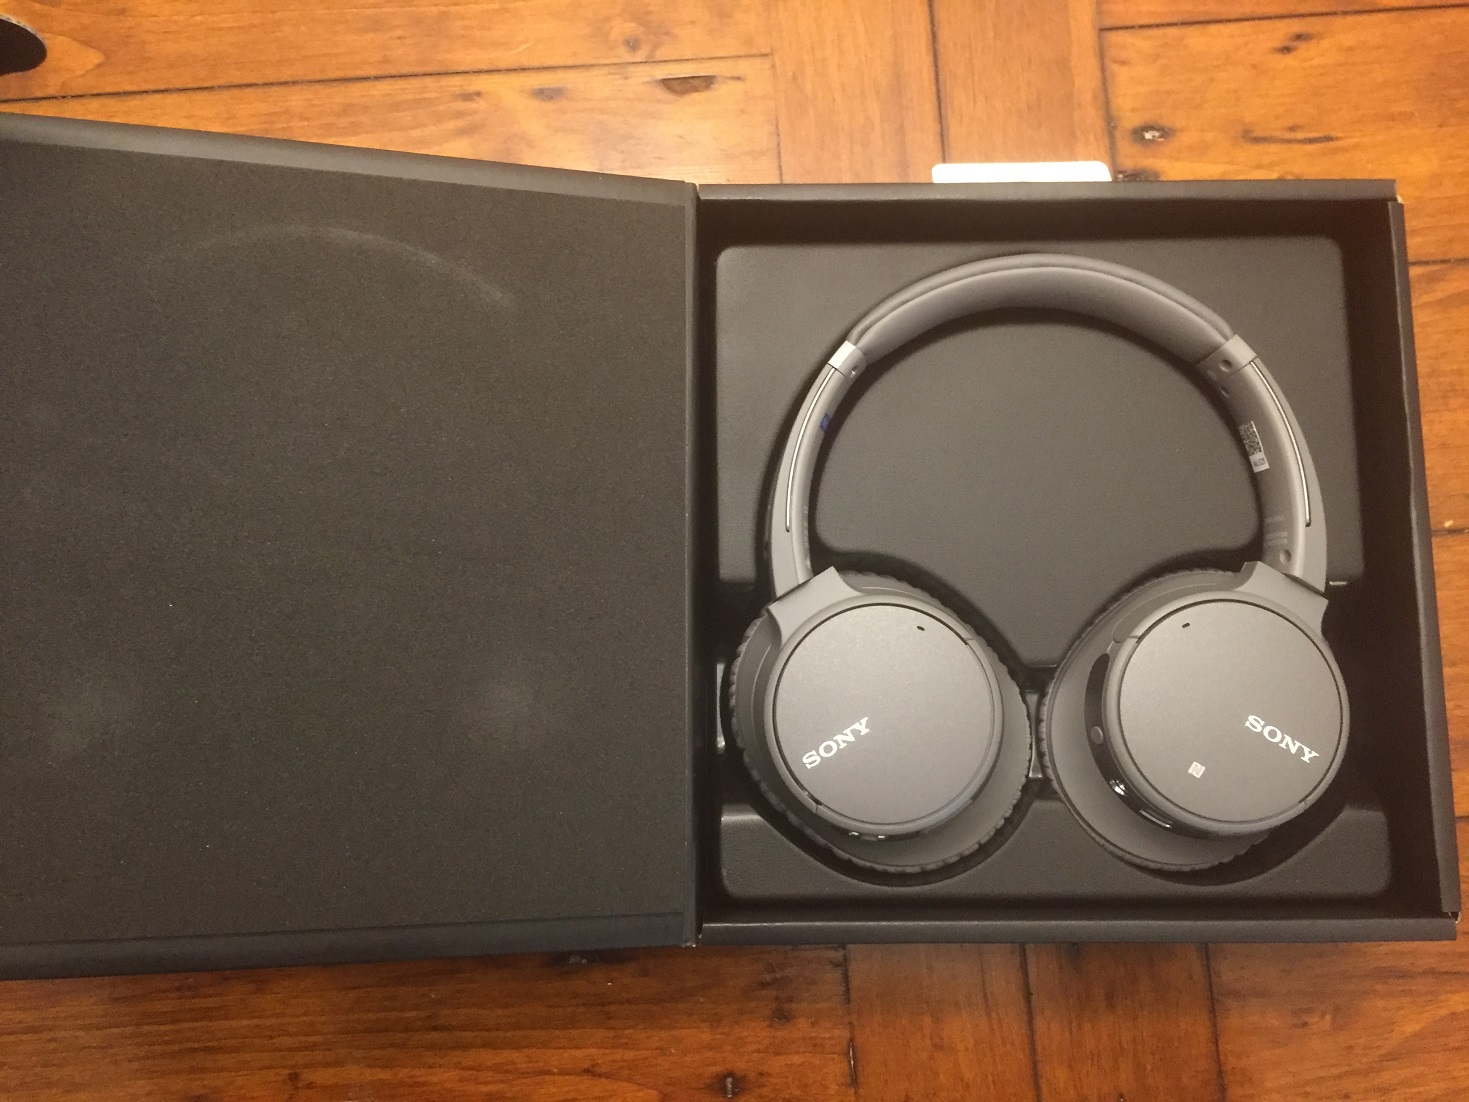 Review Sony Wh Ch700n Ch500 Wireless Headphones Best Buy Blog Headphone Jack Wiring A Pair Of Along With The Noise Cancelling Headset Box Contains Charging Cable And As Well Usual User